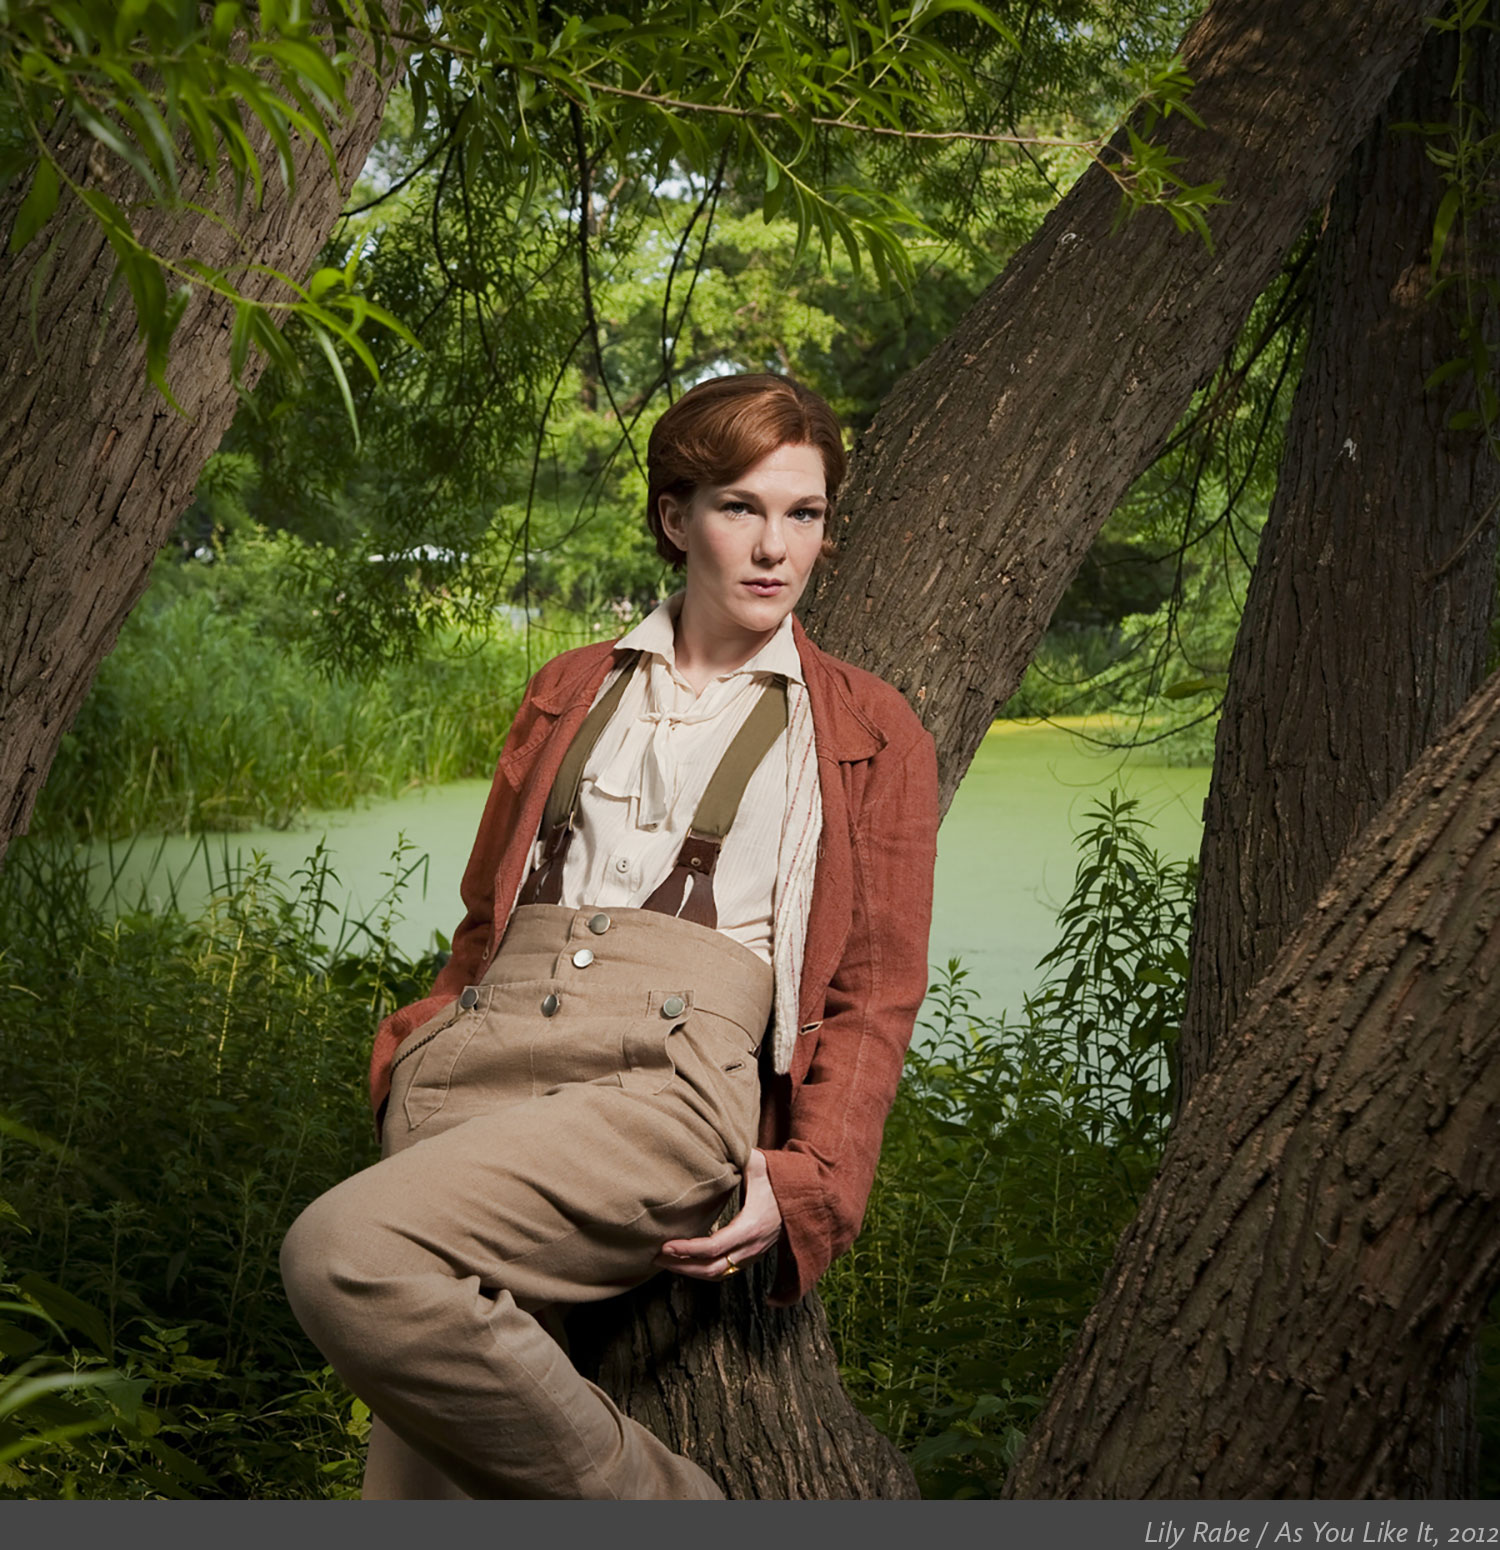 23_Lily_Rabe_As_You_Like_It_2012.jpg